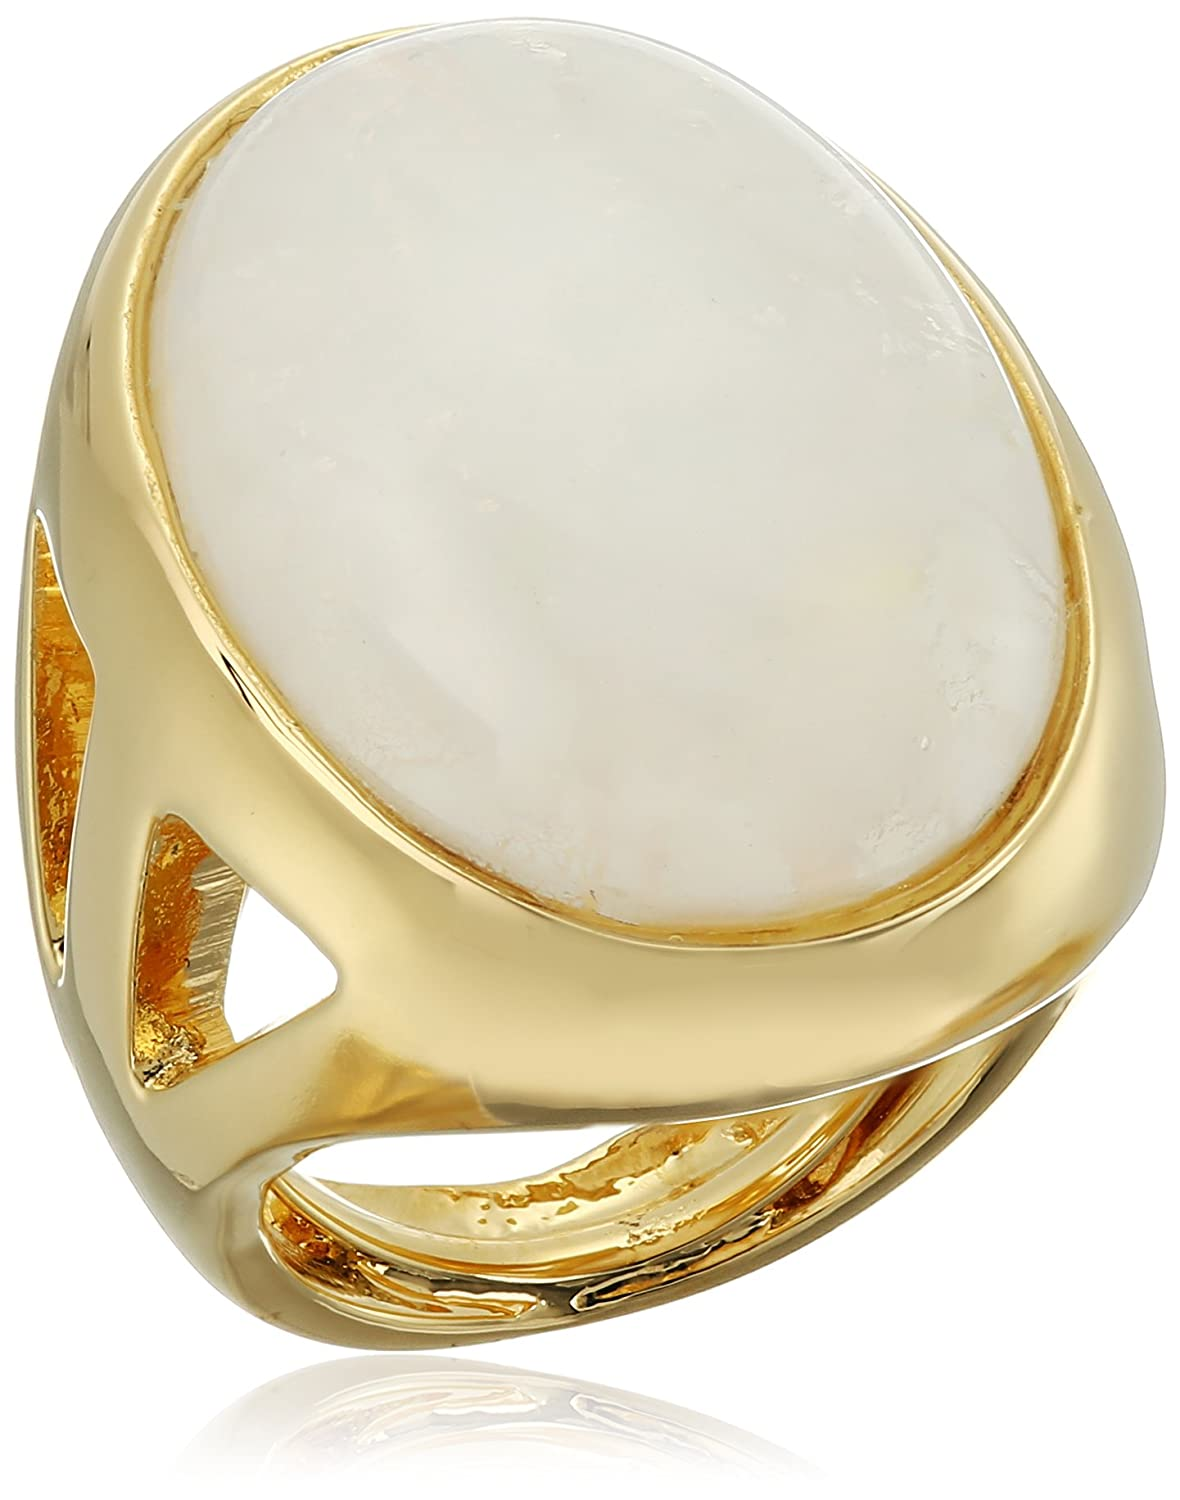 Kenneth Jay Lane Polished Gold Open Side and White Quartz Center Ring, Size 5-7 7383RPGWQ